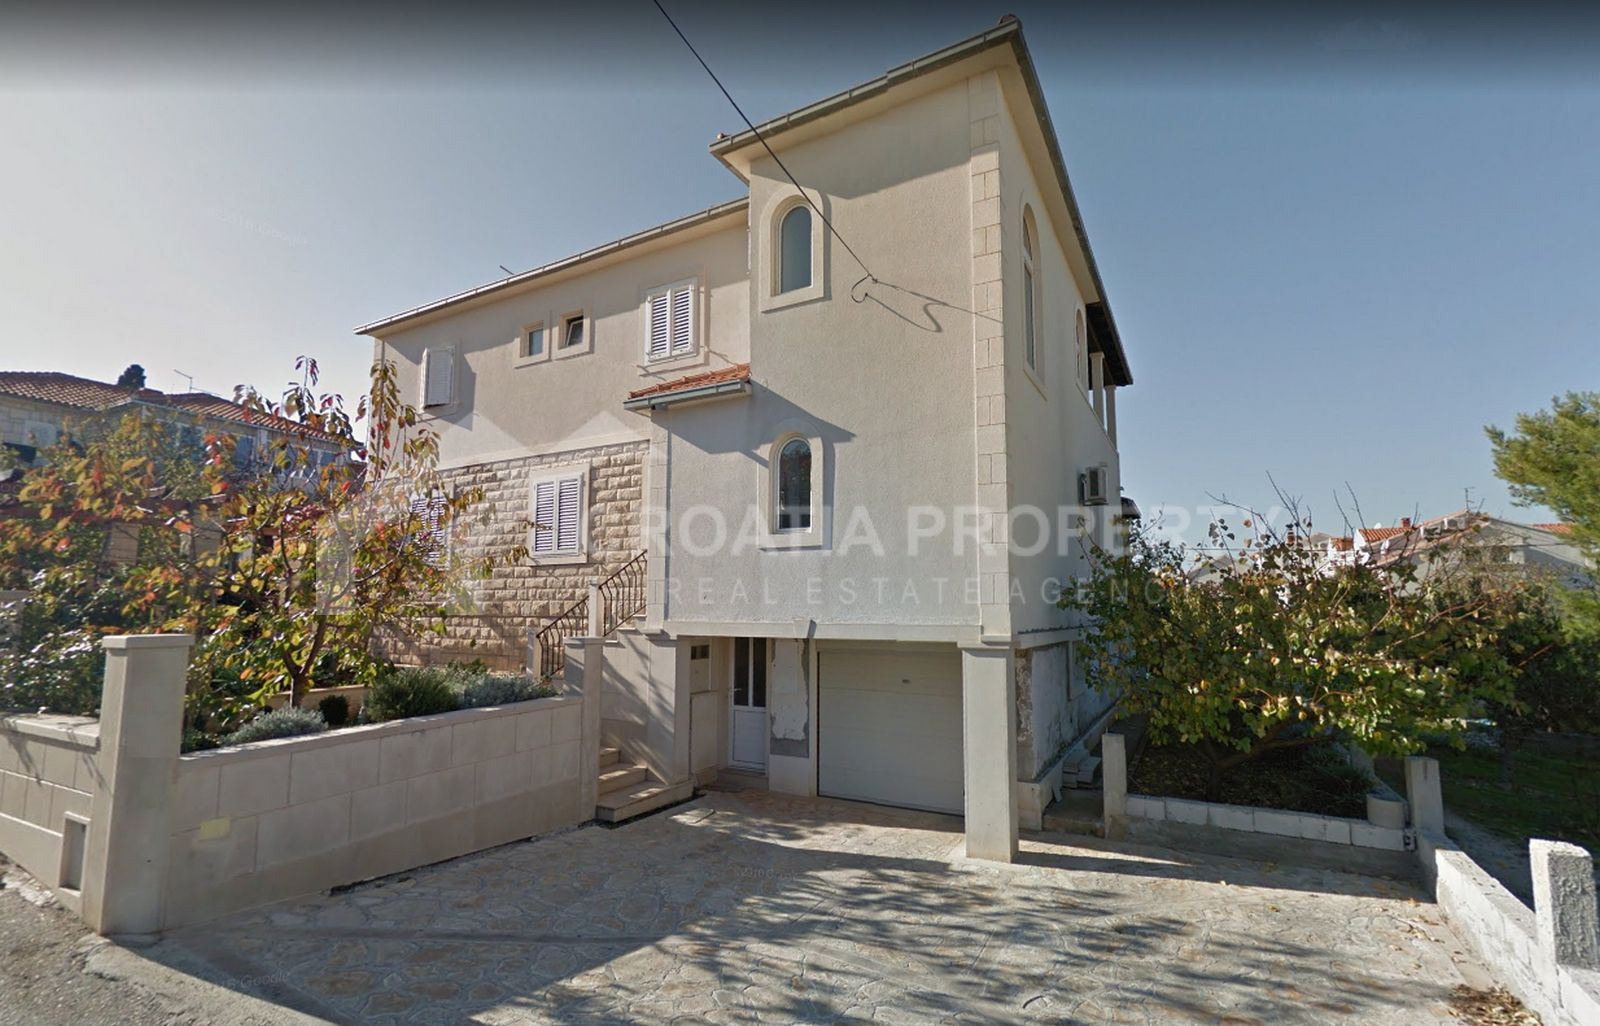 Semi-detached house Supetar for sale